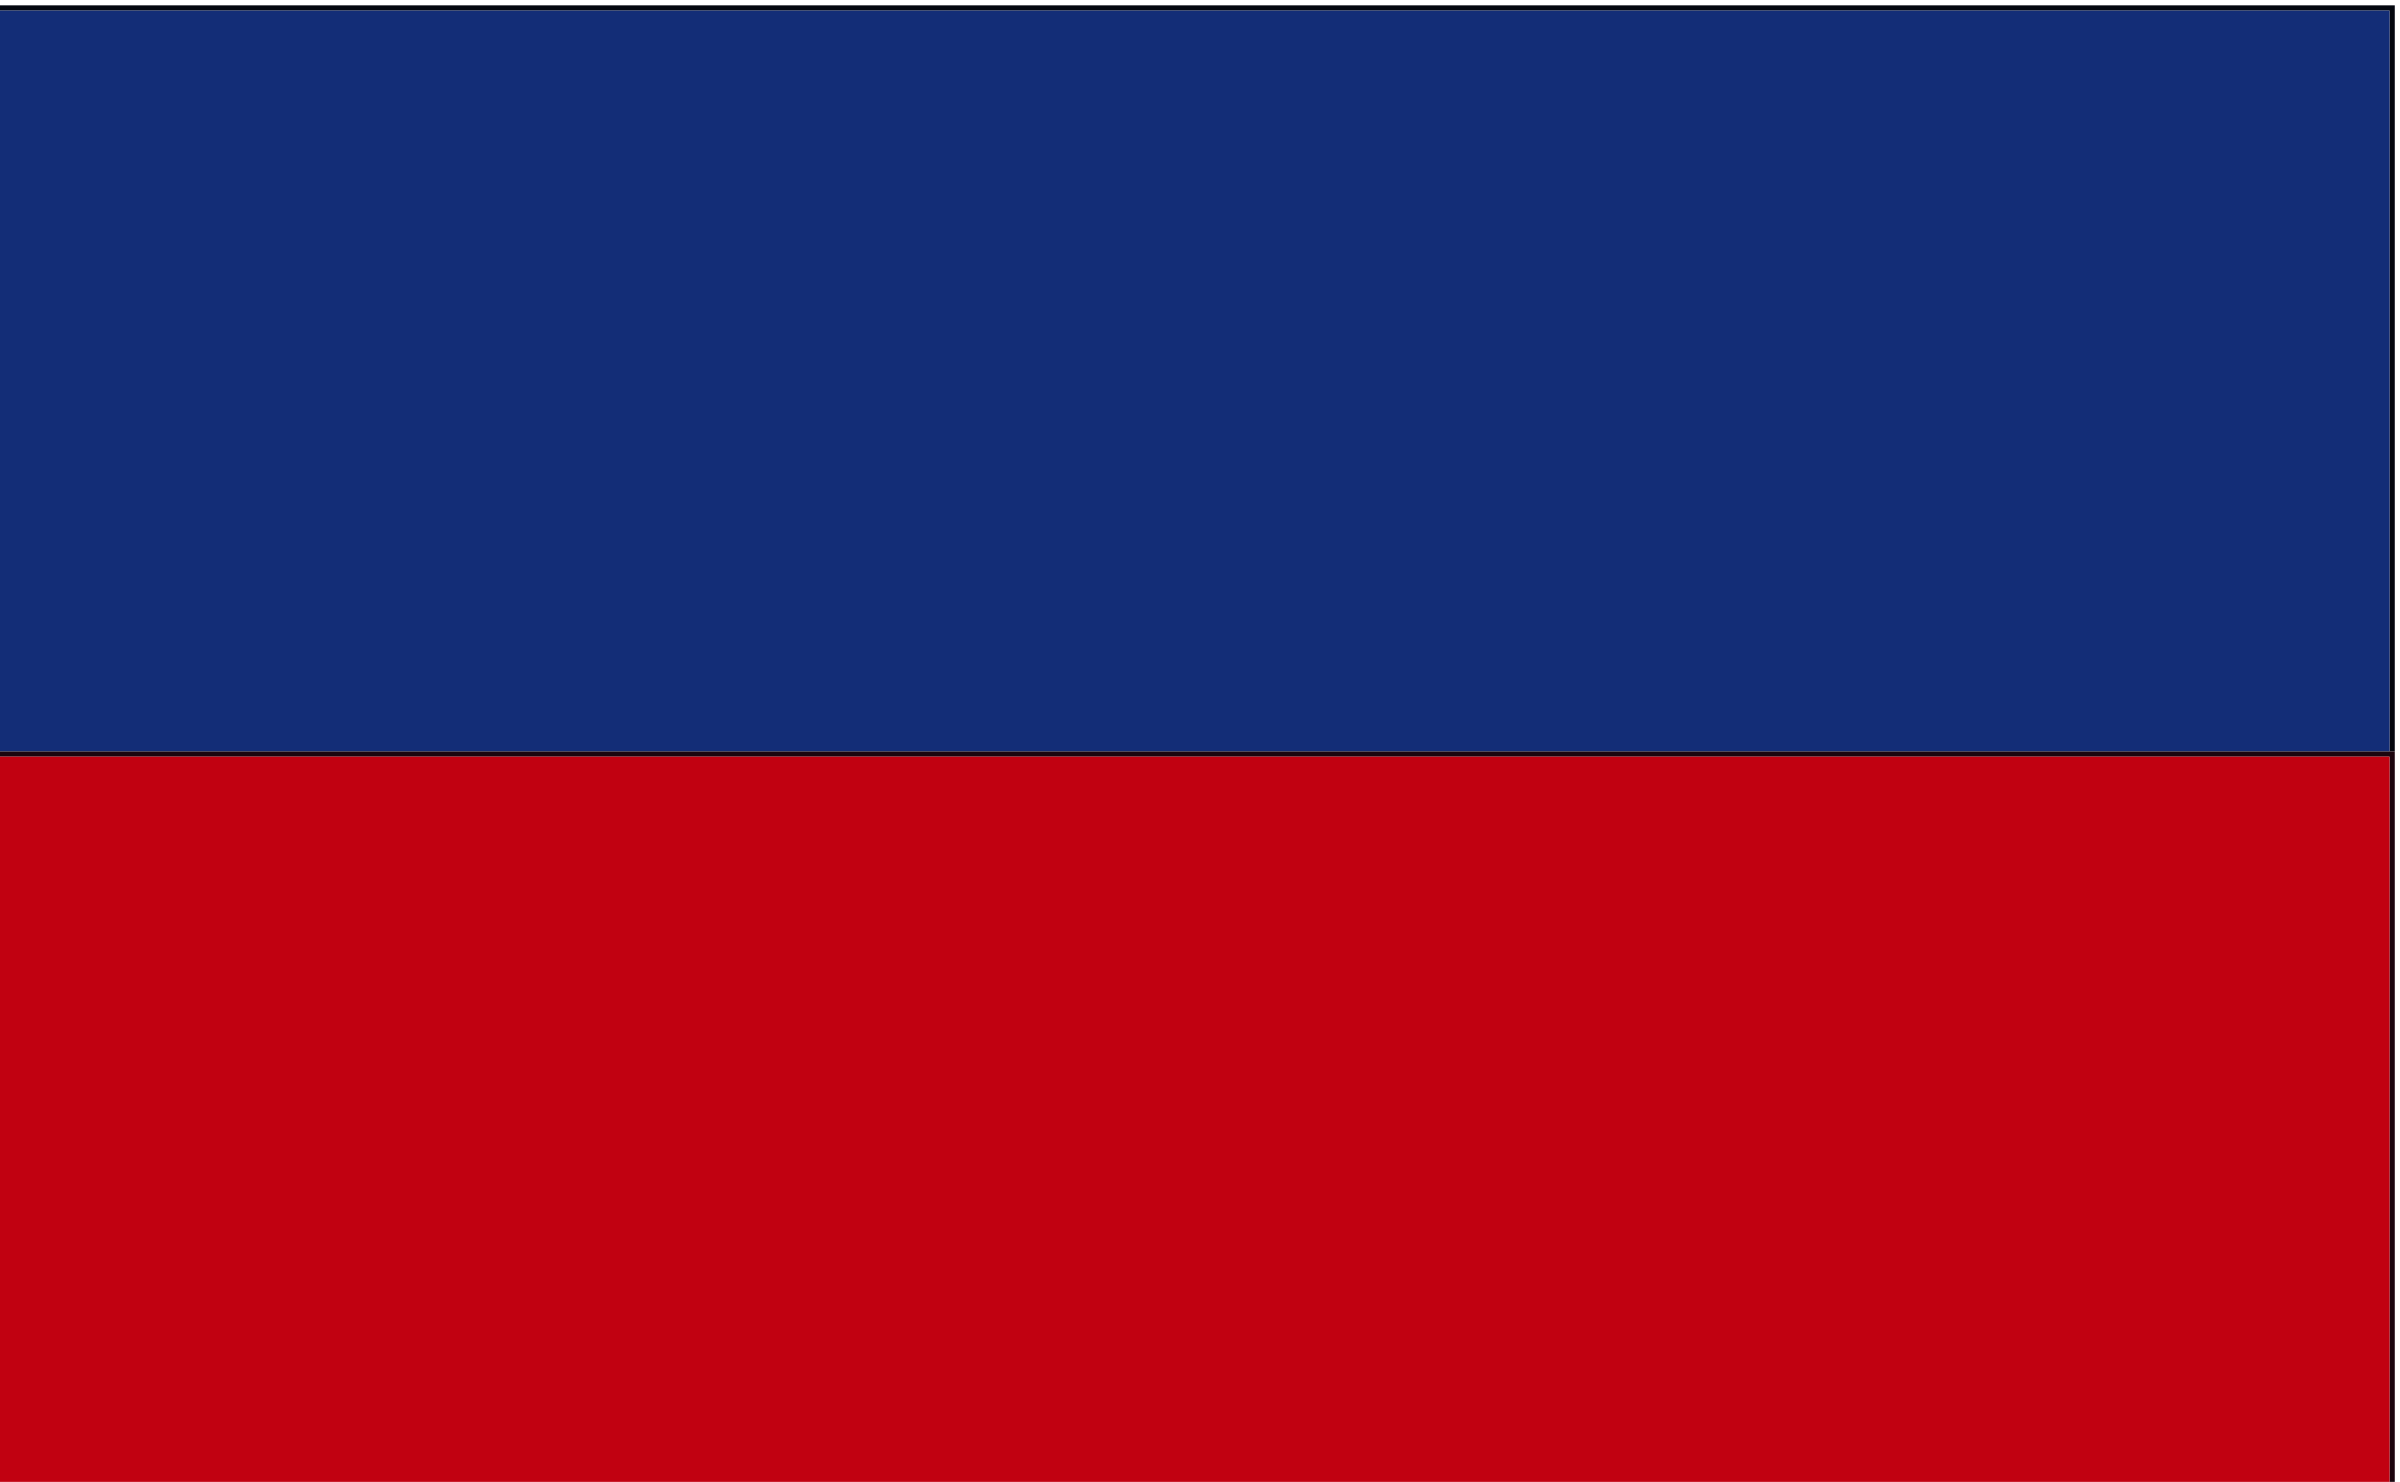 Haiti flag by Joesph